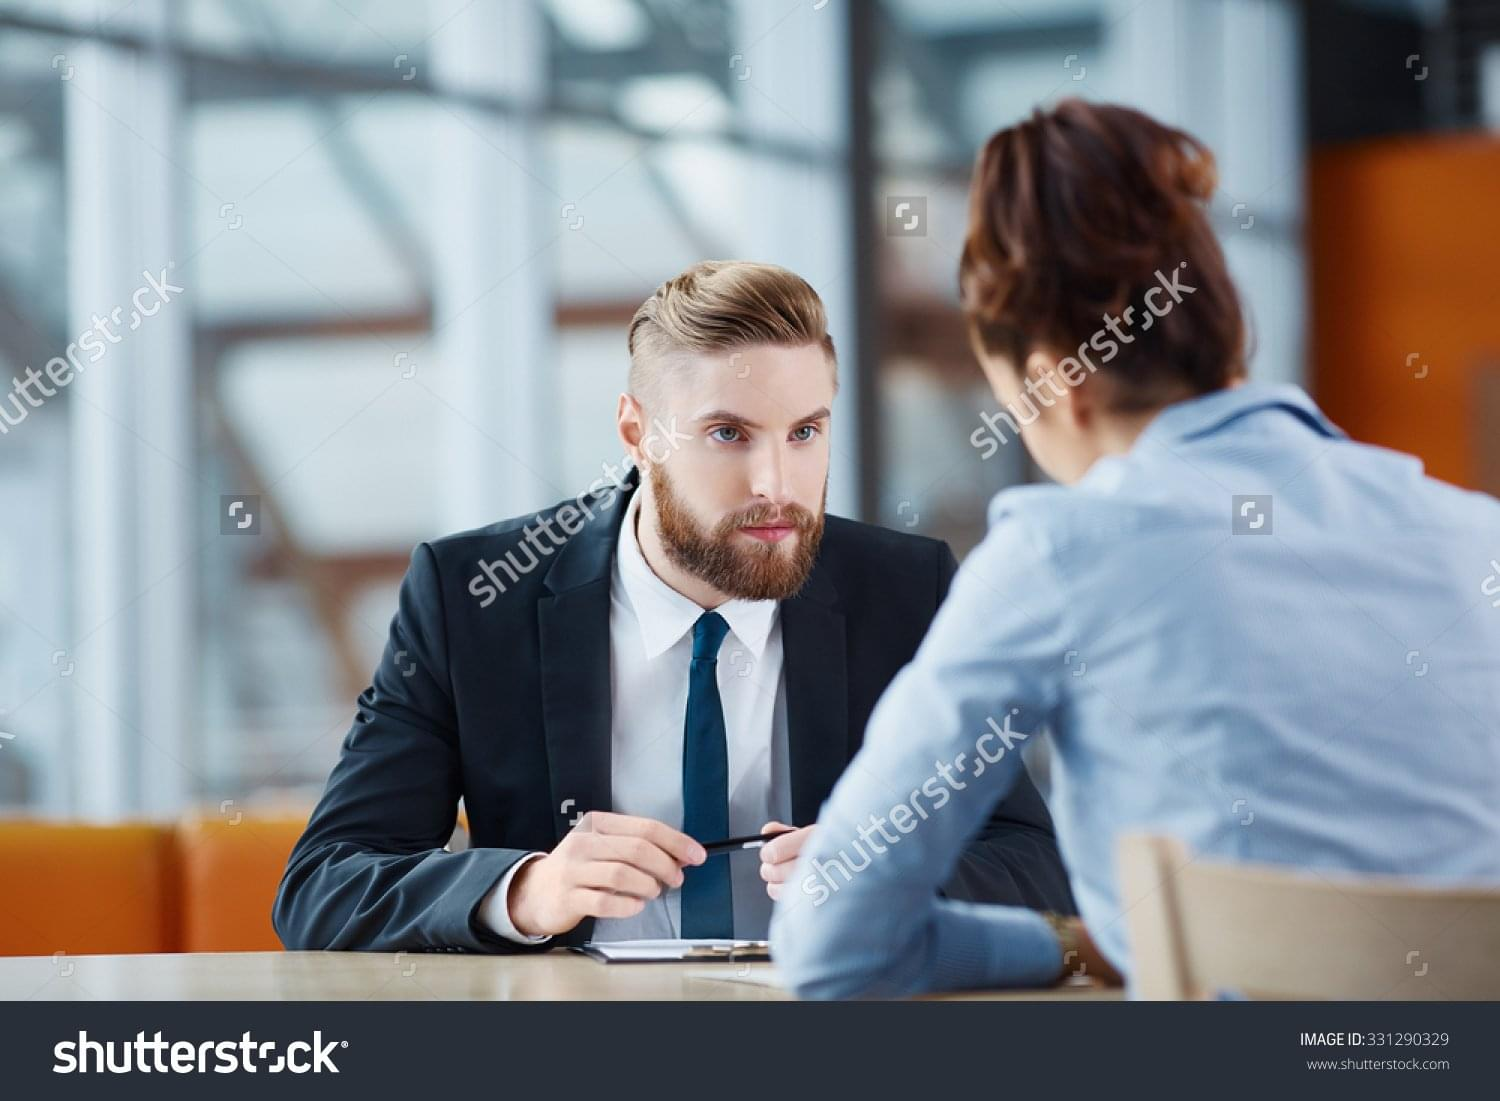 most ridiculous recruitment related stock images stock photo recruiter asking questions during job interview